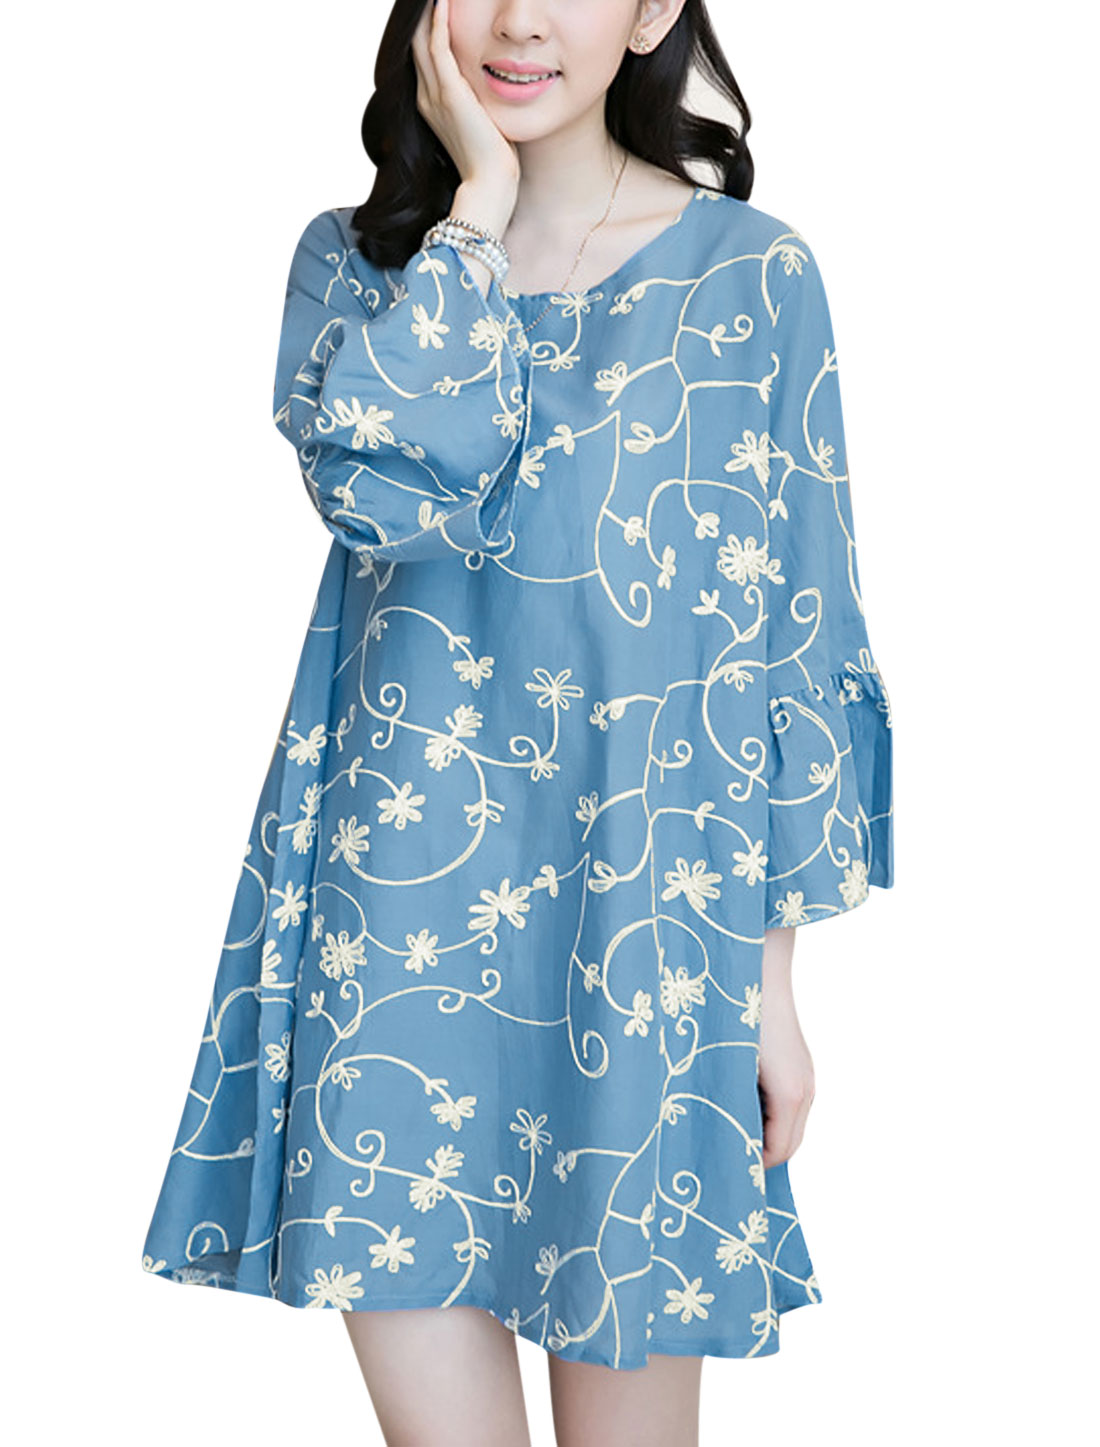 Lady 3/4 Trumpet Sleeve Floral Embroidery Loose Fit Unlined Dress Blue S